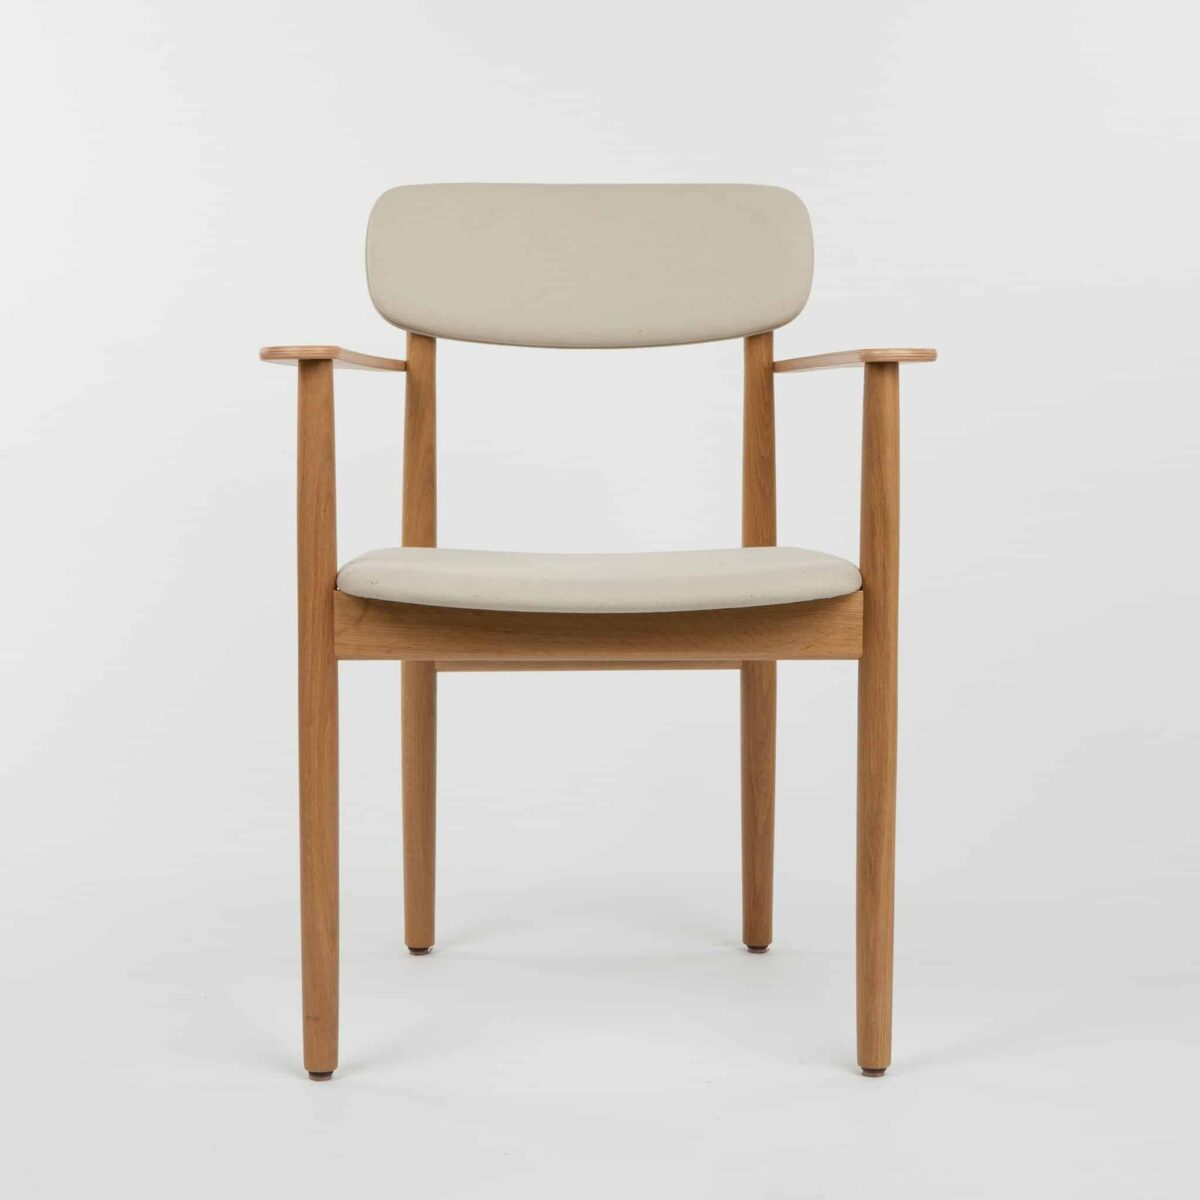 thonet-130-chair-with-armrests-upholstered-another-country-001.jpg